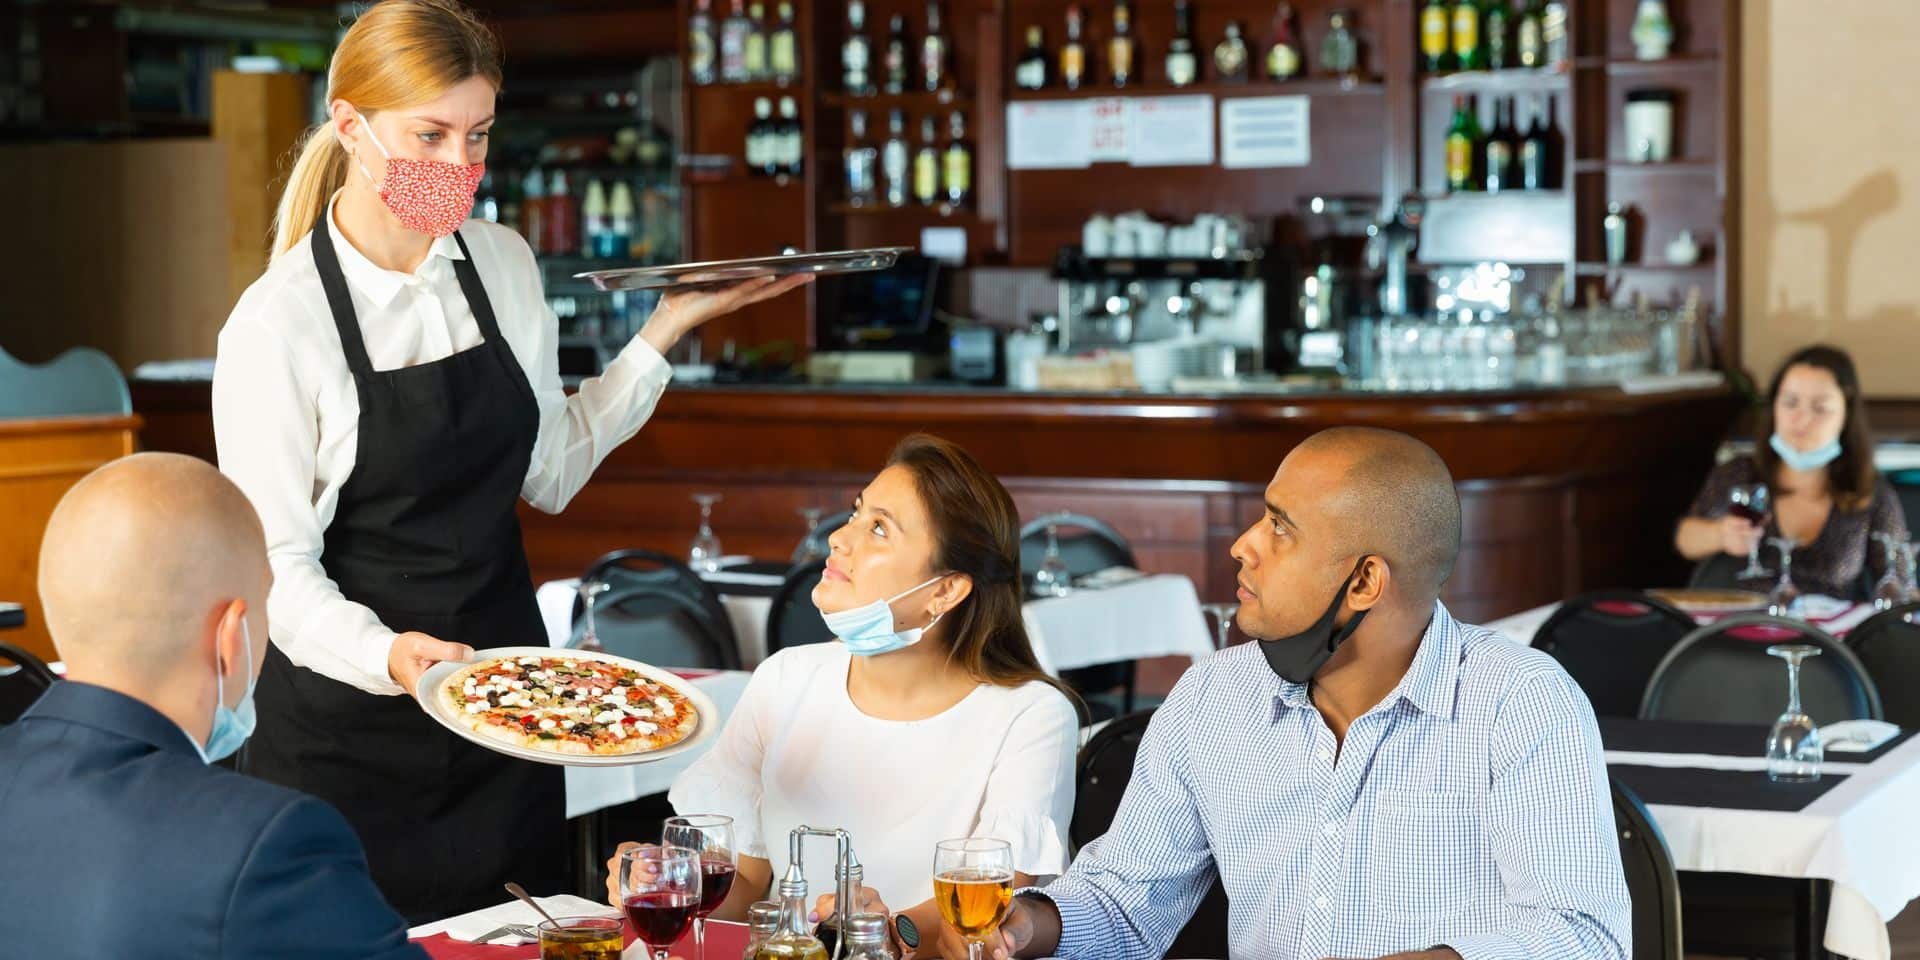 Polite,Waitress,In,Protective,Mask,Bringing,Ordered,Pizza,To,Friends